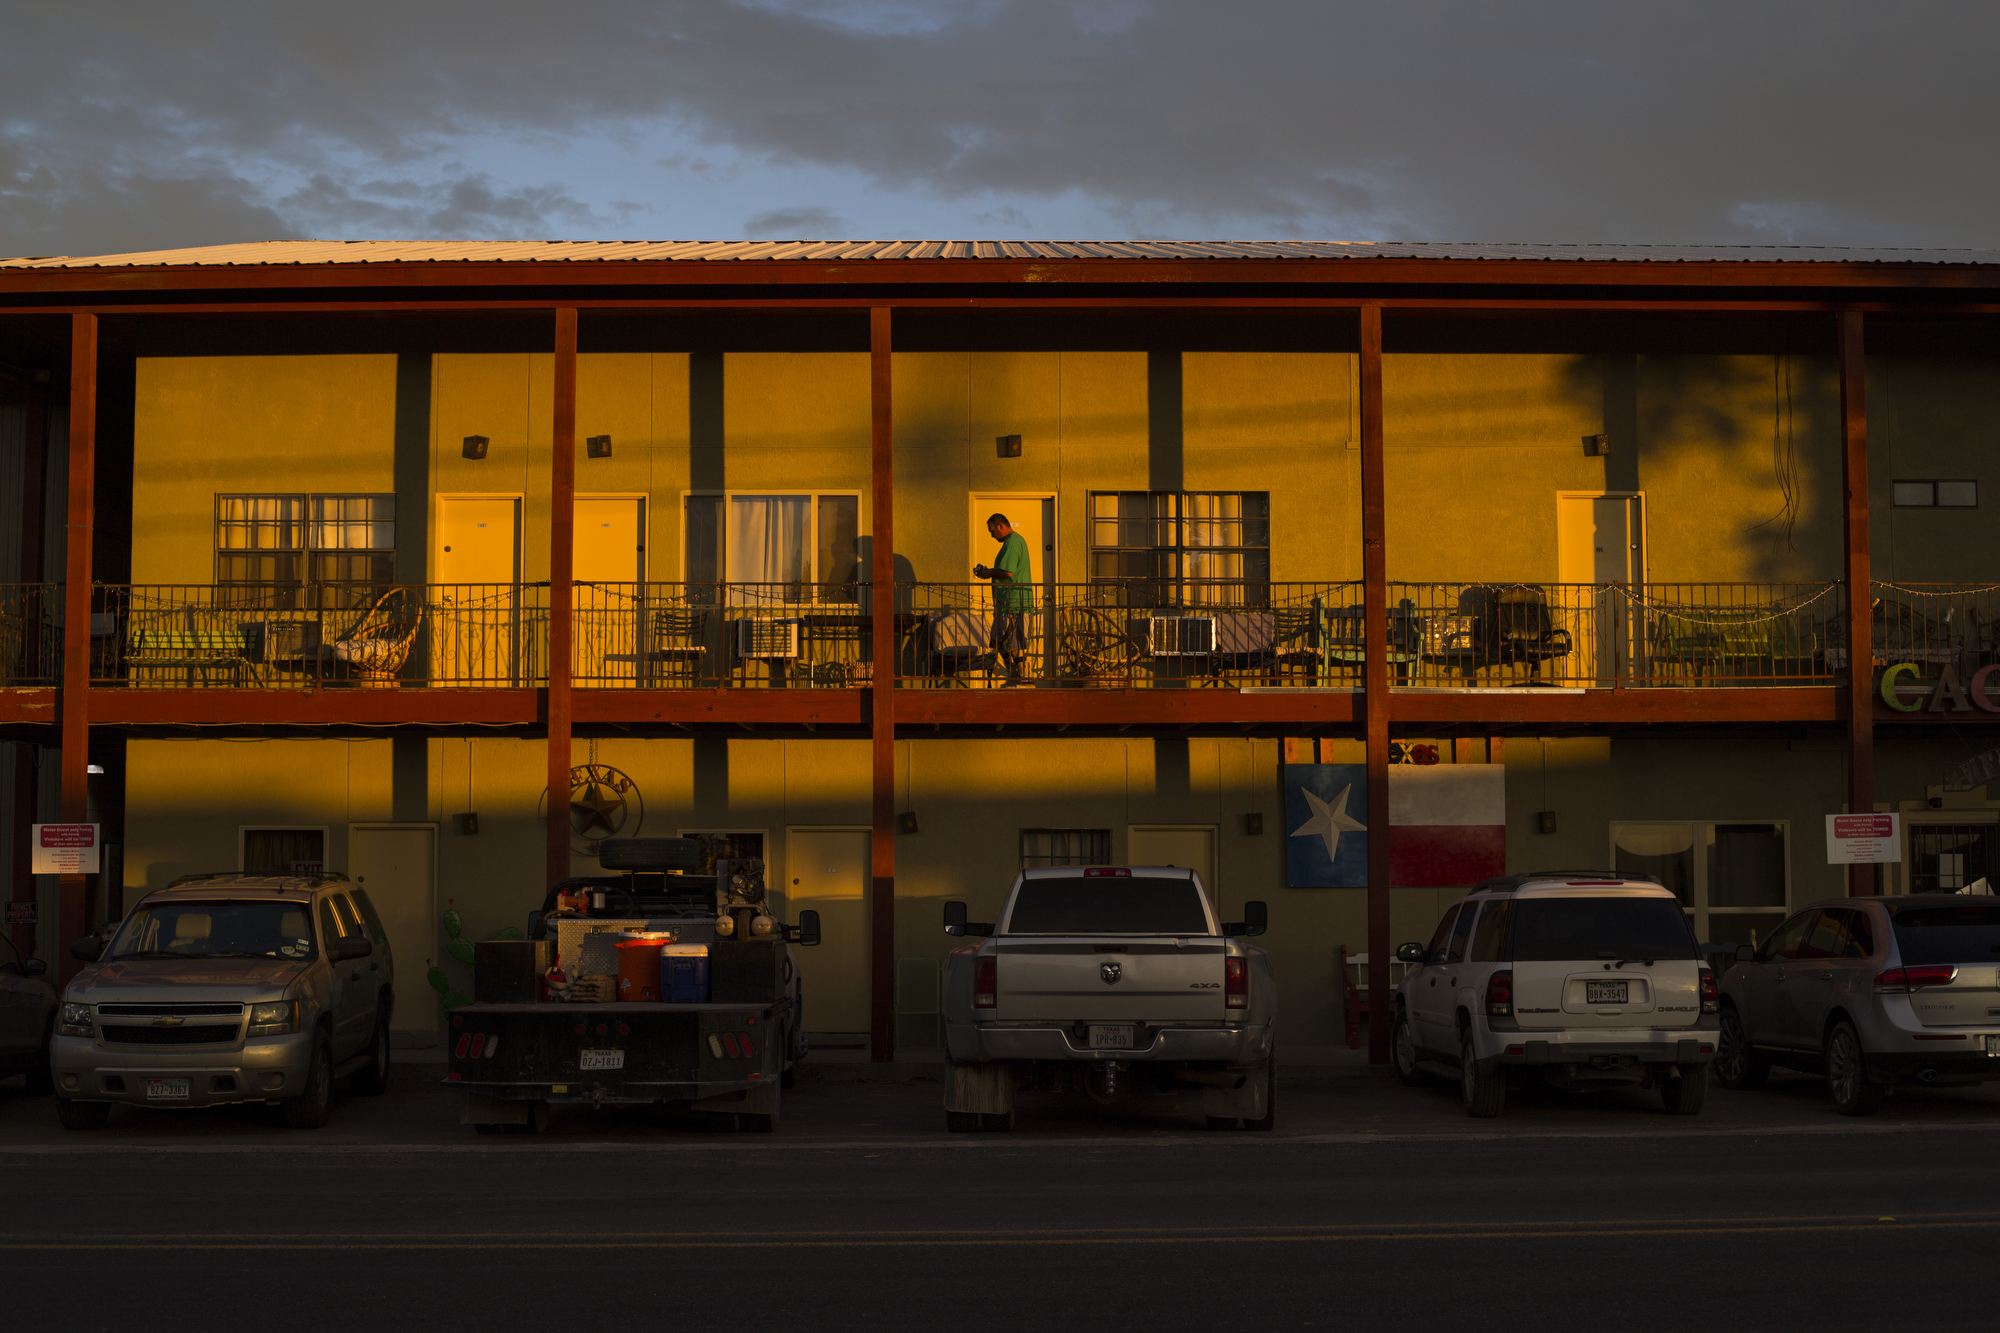 A man walks along the balcony of the Cactus Motel in Balmoreah on Wednesday, August 17, 2016. The rise of fracking nearby the town has some community members worried about their drinking water and natural springs, which serve as a popular tourism destination helping drive the town's economy.